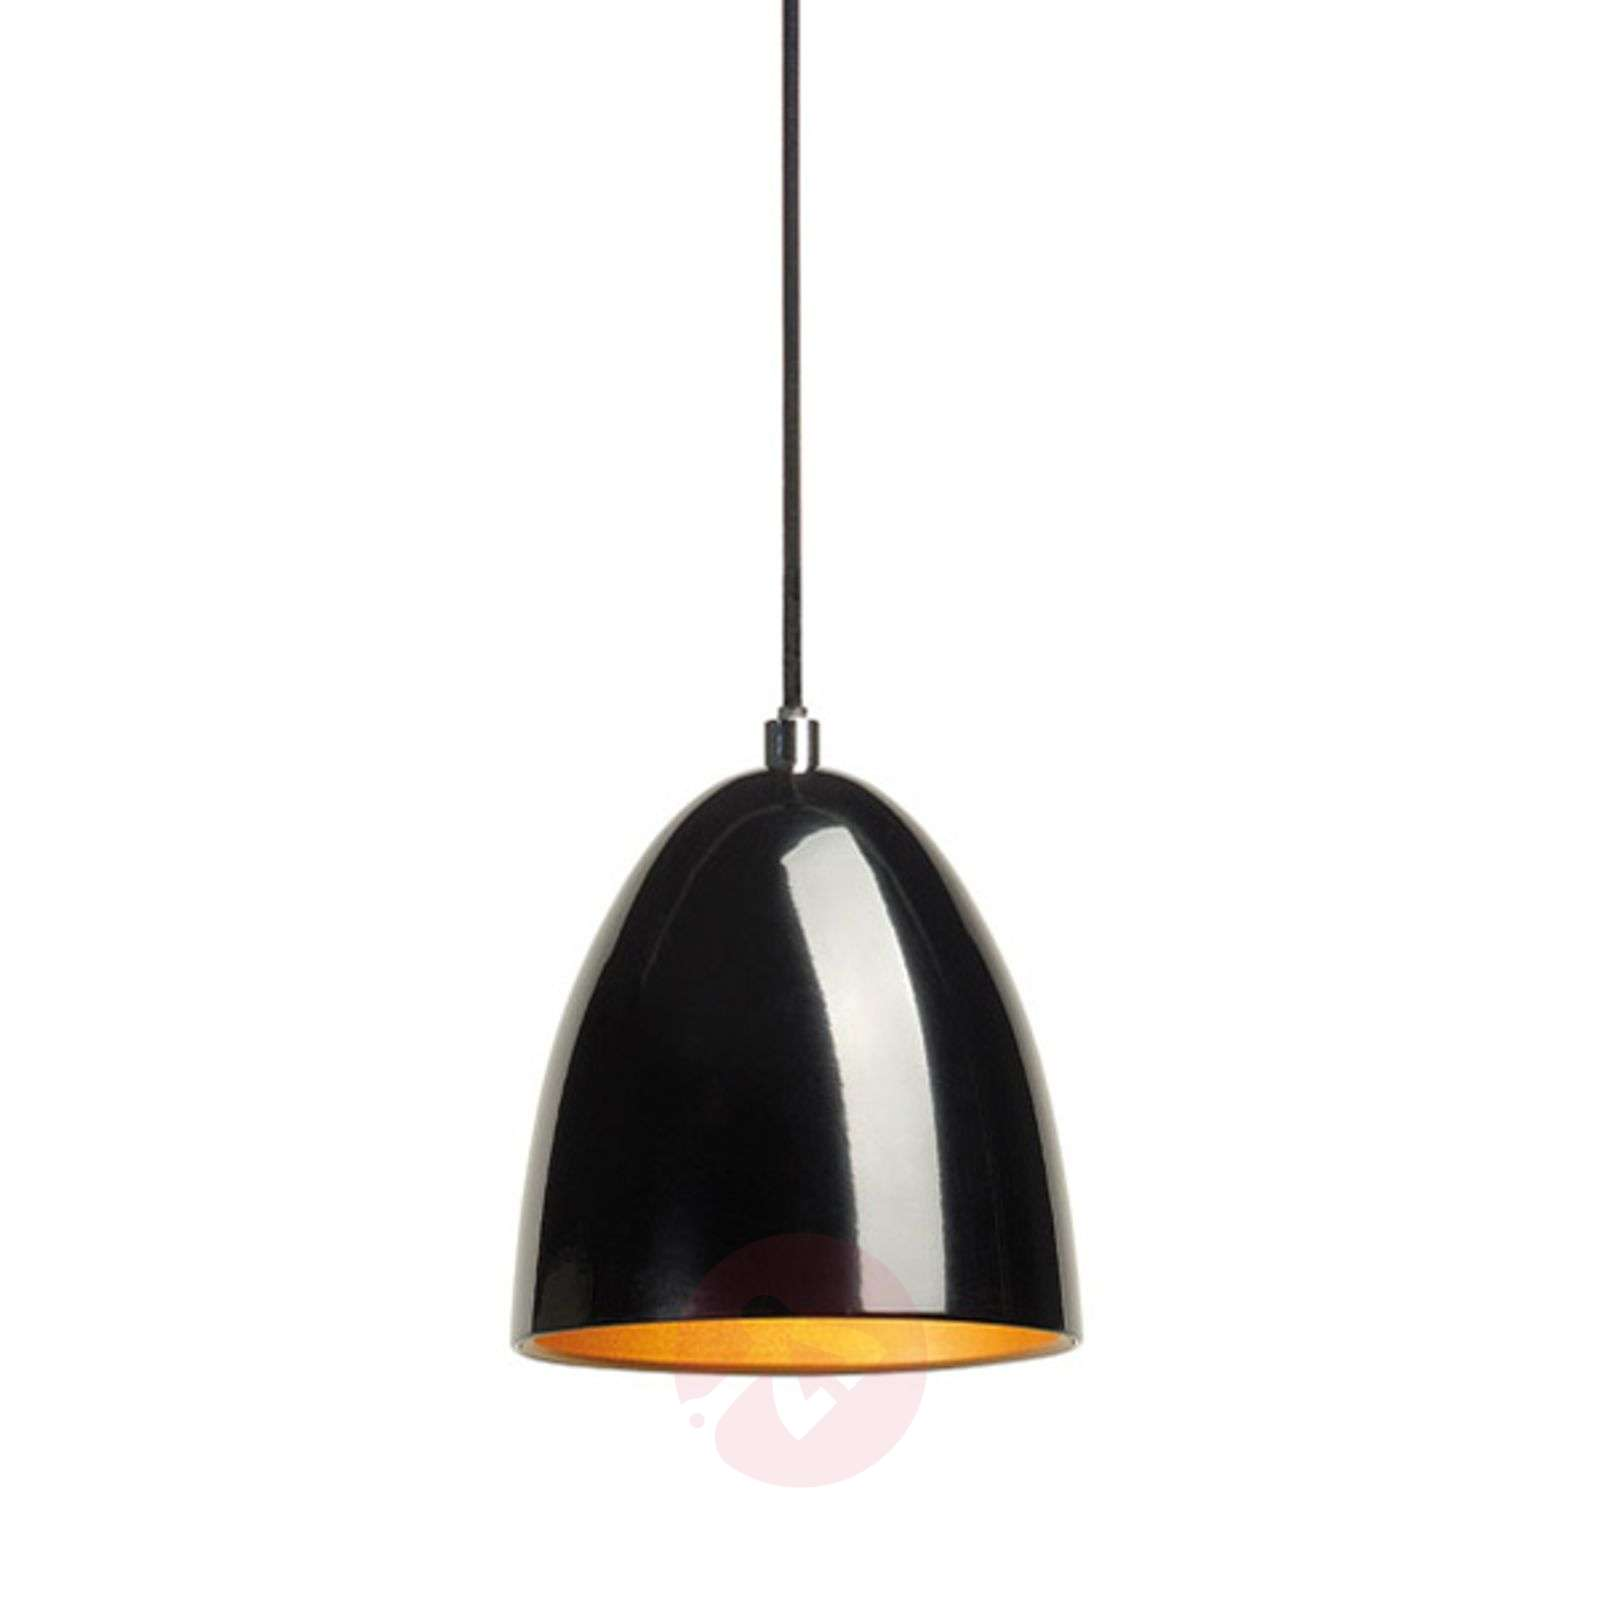 made oak p pendant positivo lacquered universo en of cone white lamp metal wood upcone and hires